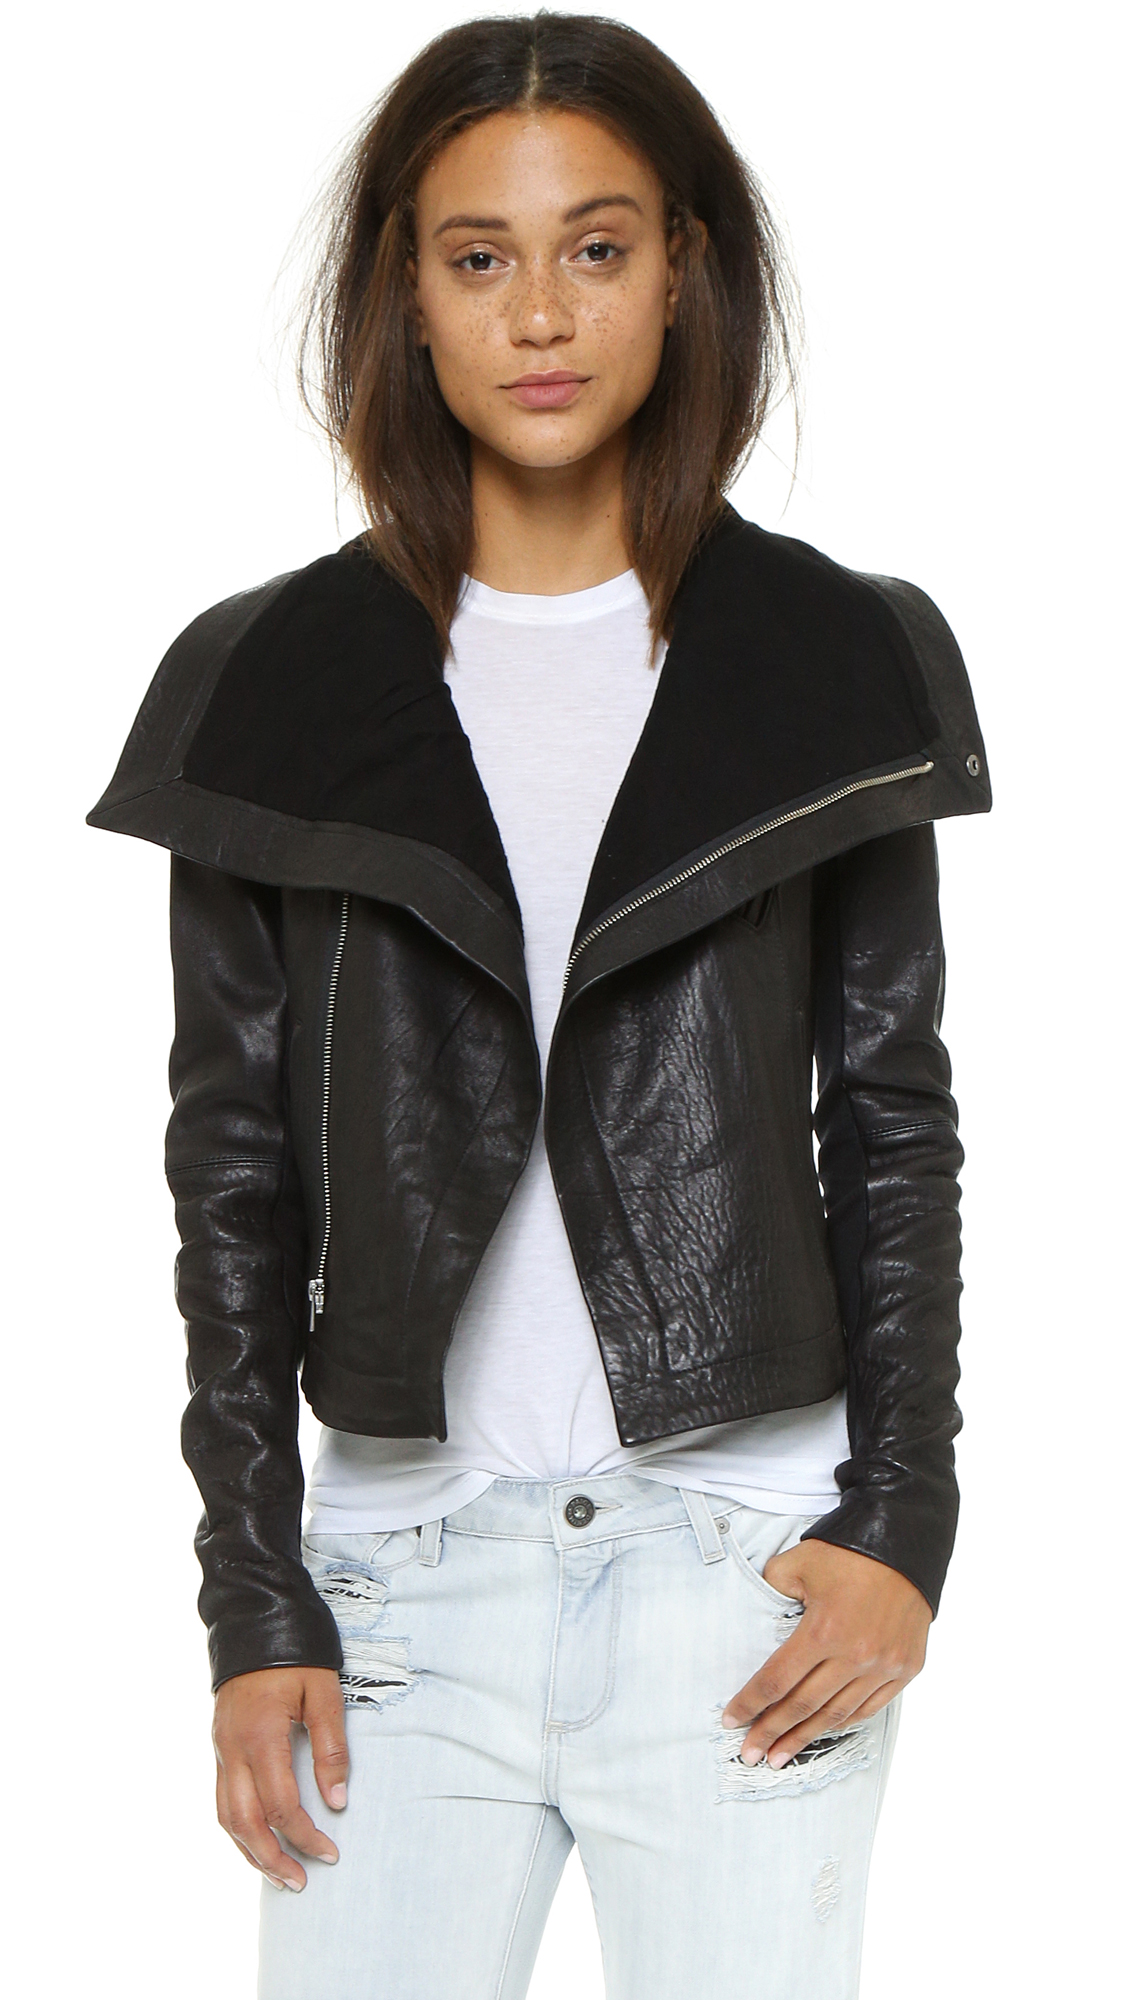 A funnel collar adds cool volume to this lambskin leather jacket, designed with 3 pockets and an off center zip. Ribbed insets give the long sleeves a snug fit. Lined. Fabric: Lambskin. Shell: 100% lambskin. Trim: 95% cotton/5% spandex.